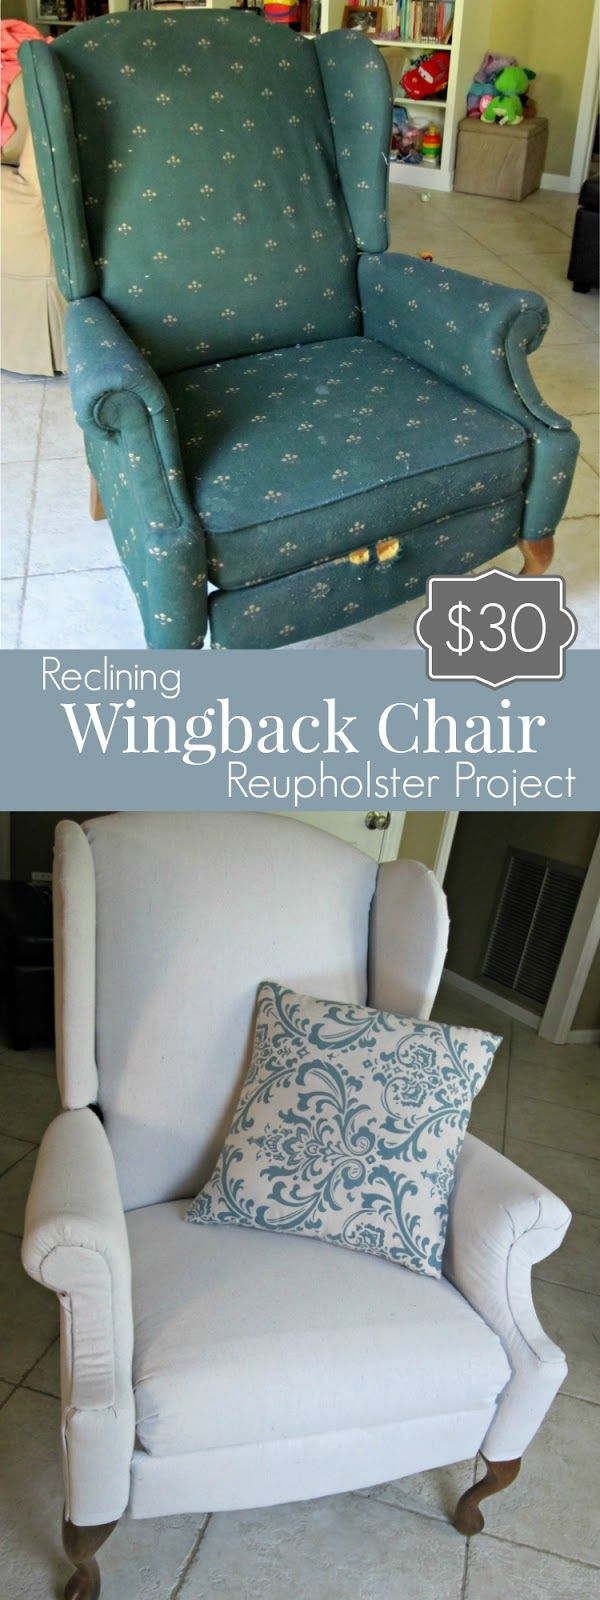 $30 Reclining Wingback Reupholstery Project